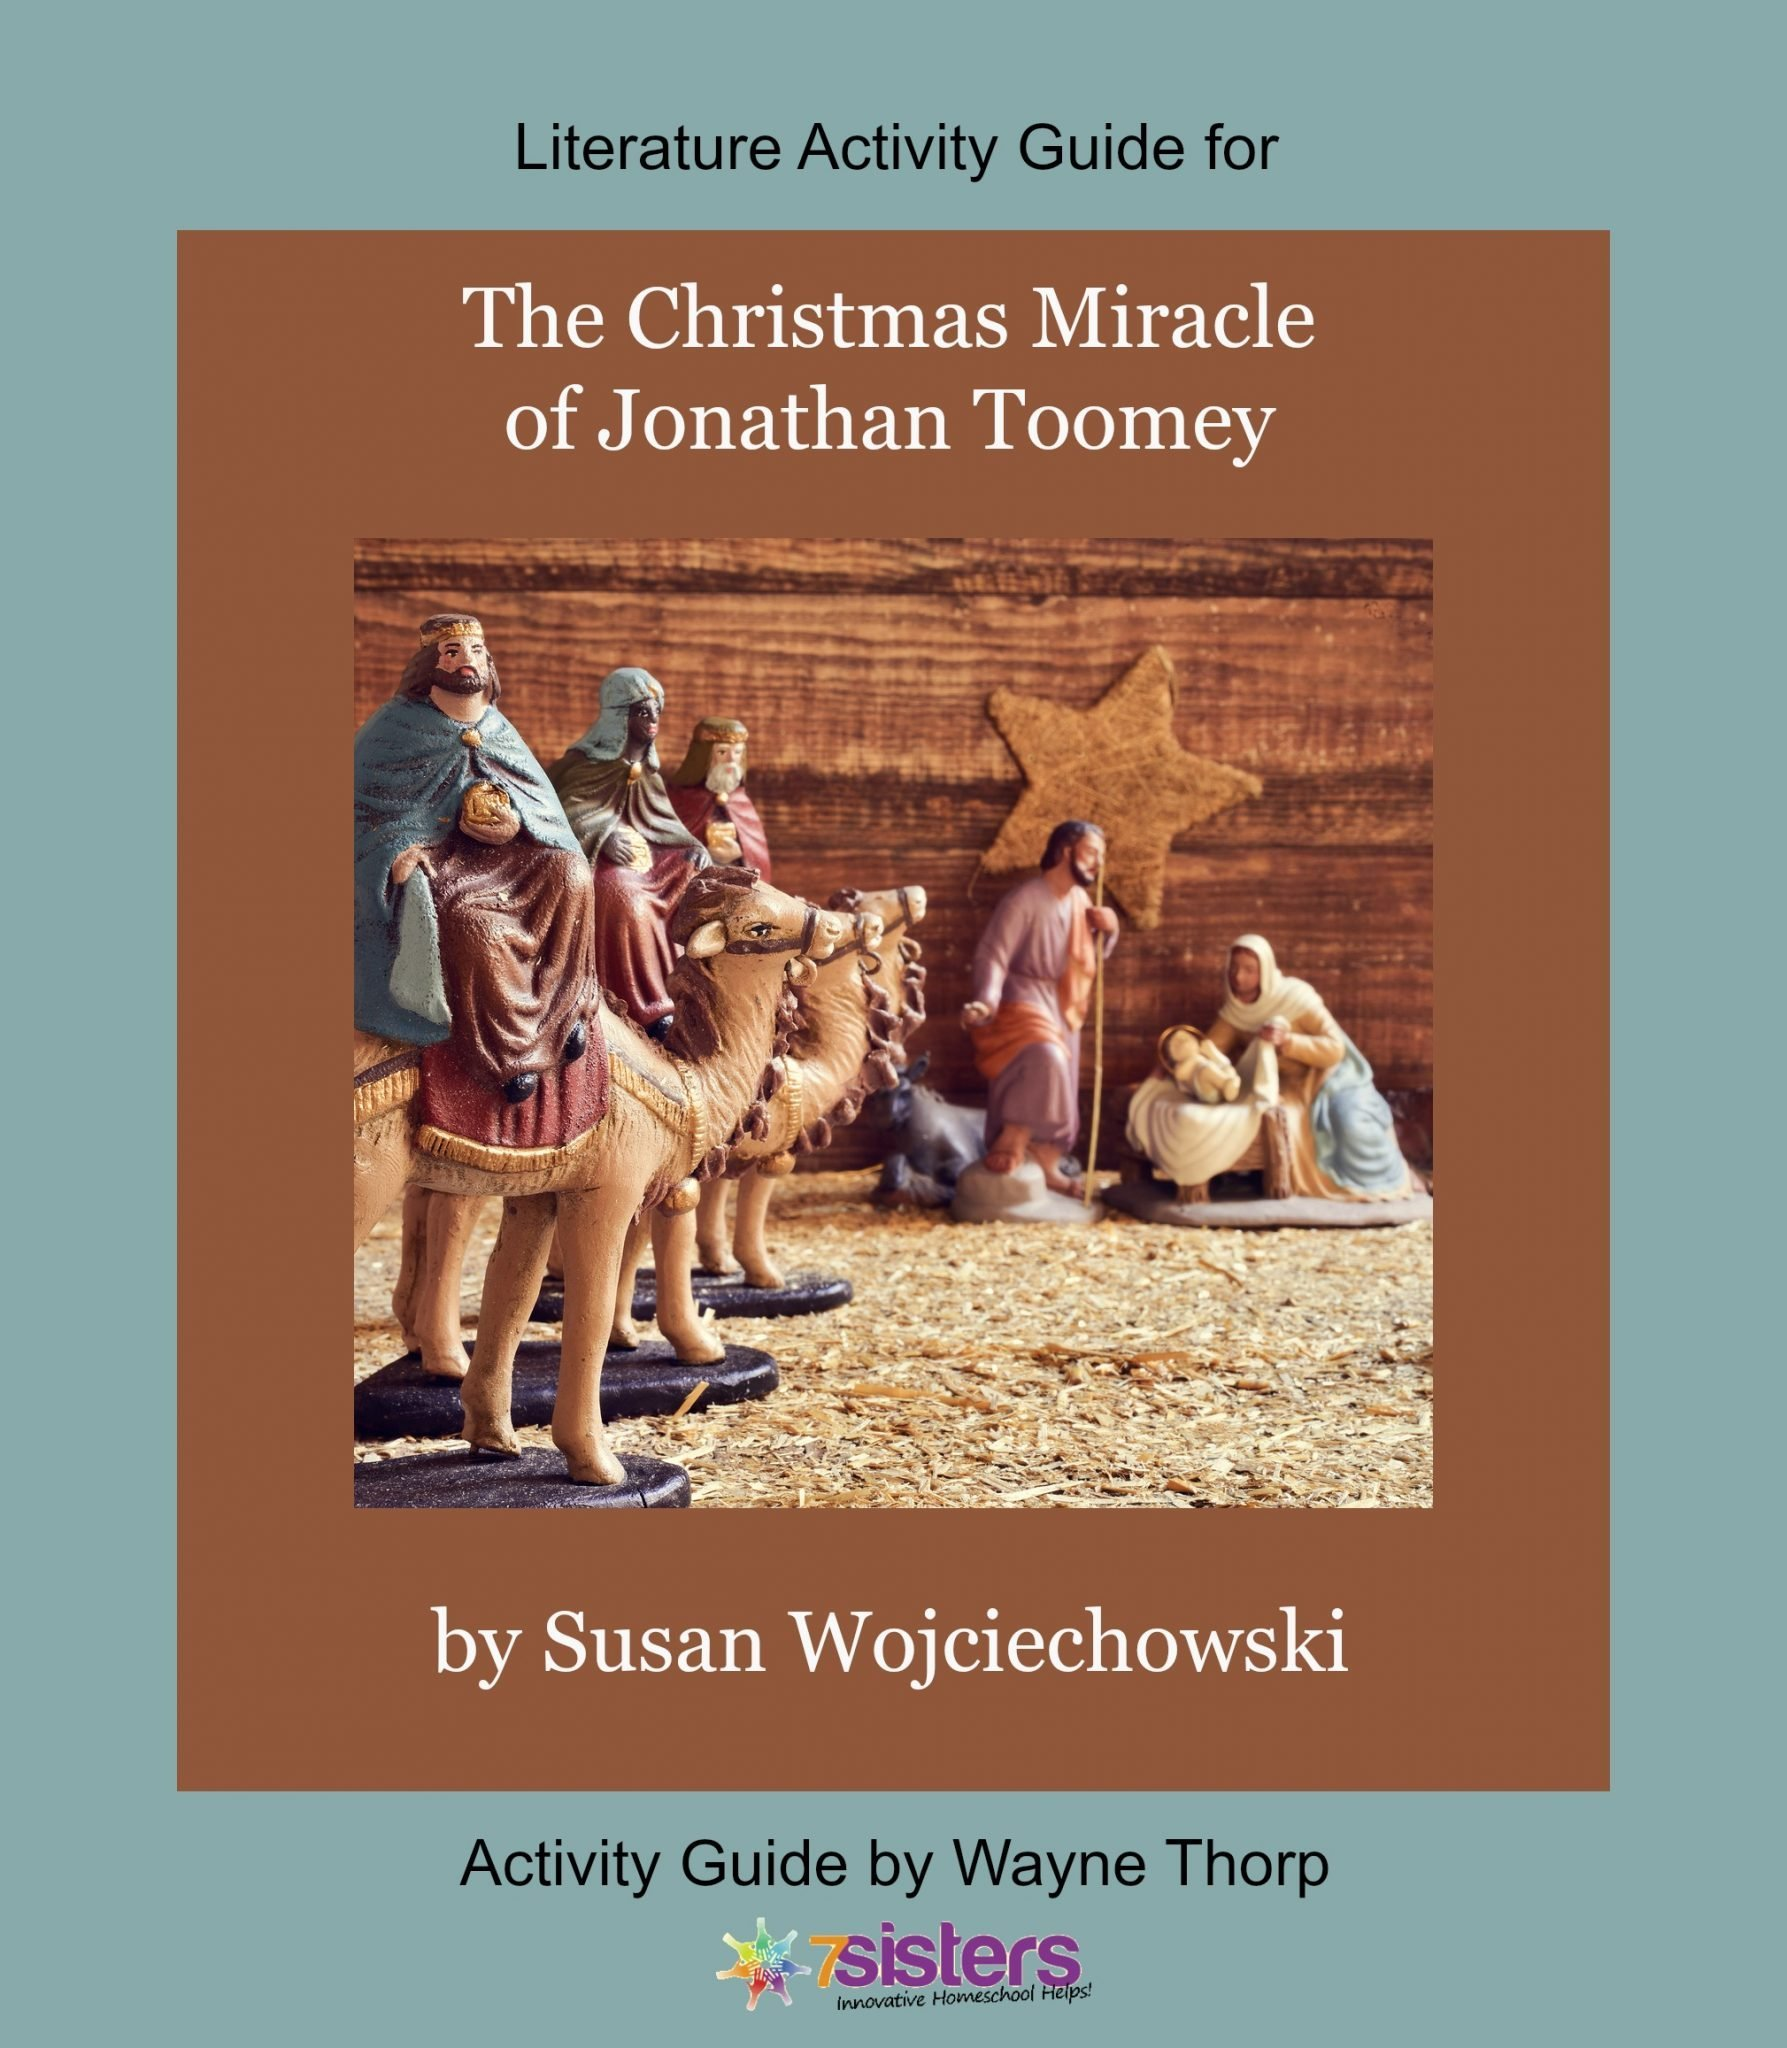 The Christmas Miracle Of Jonathan Toomey.Activity Guide The Christmas Miracle Of Jonathan Toomey Literature Activity Guide 7sistershomeschool Com